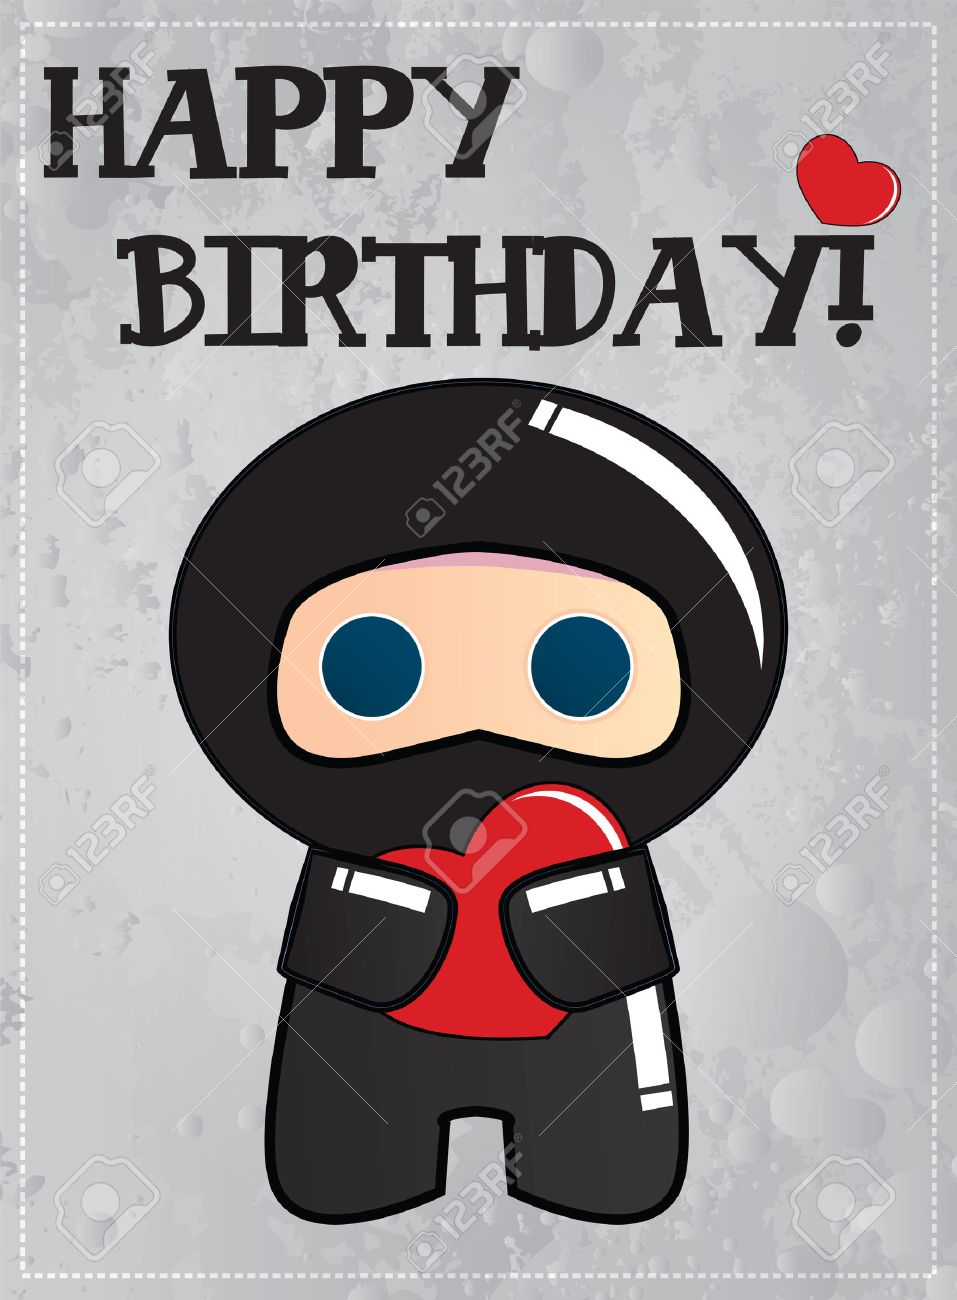 Happy Birthday Card With Cute Ninja Cartoon Character Holding A Heart Vector Stock